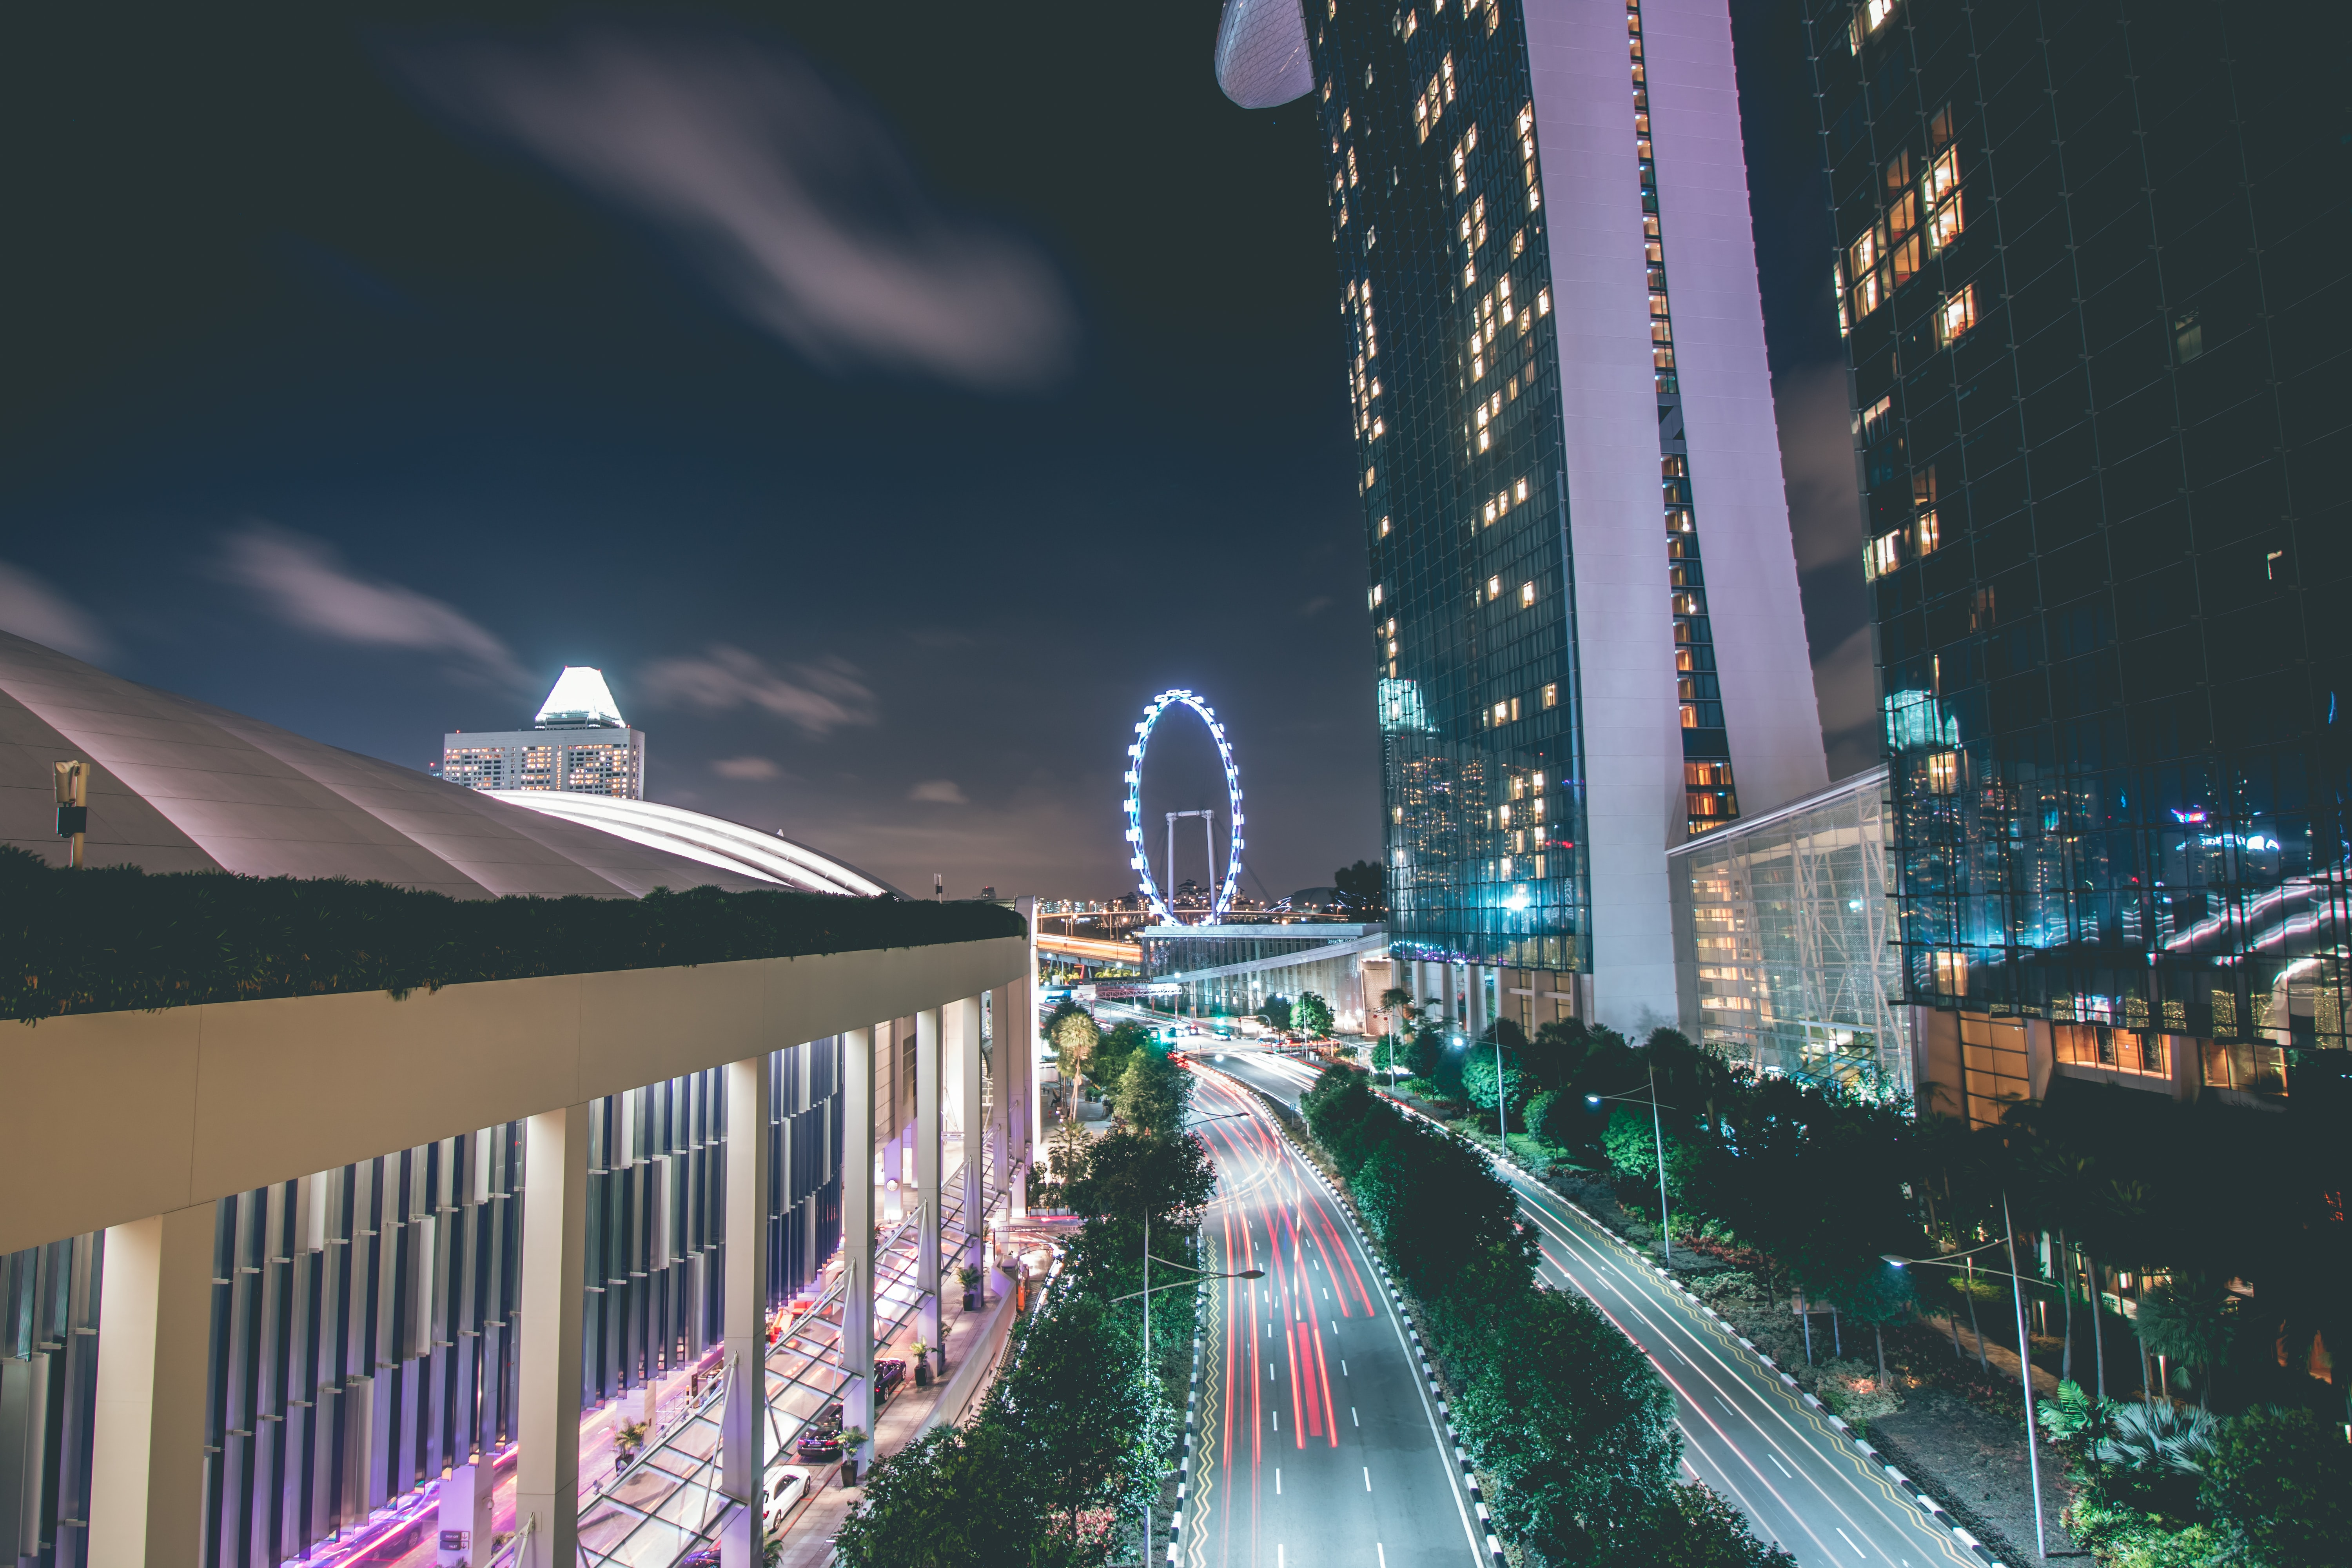 time lapse photography of Marina Bay Sands beside road